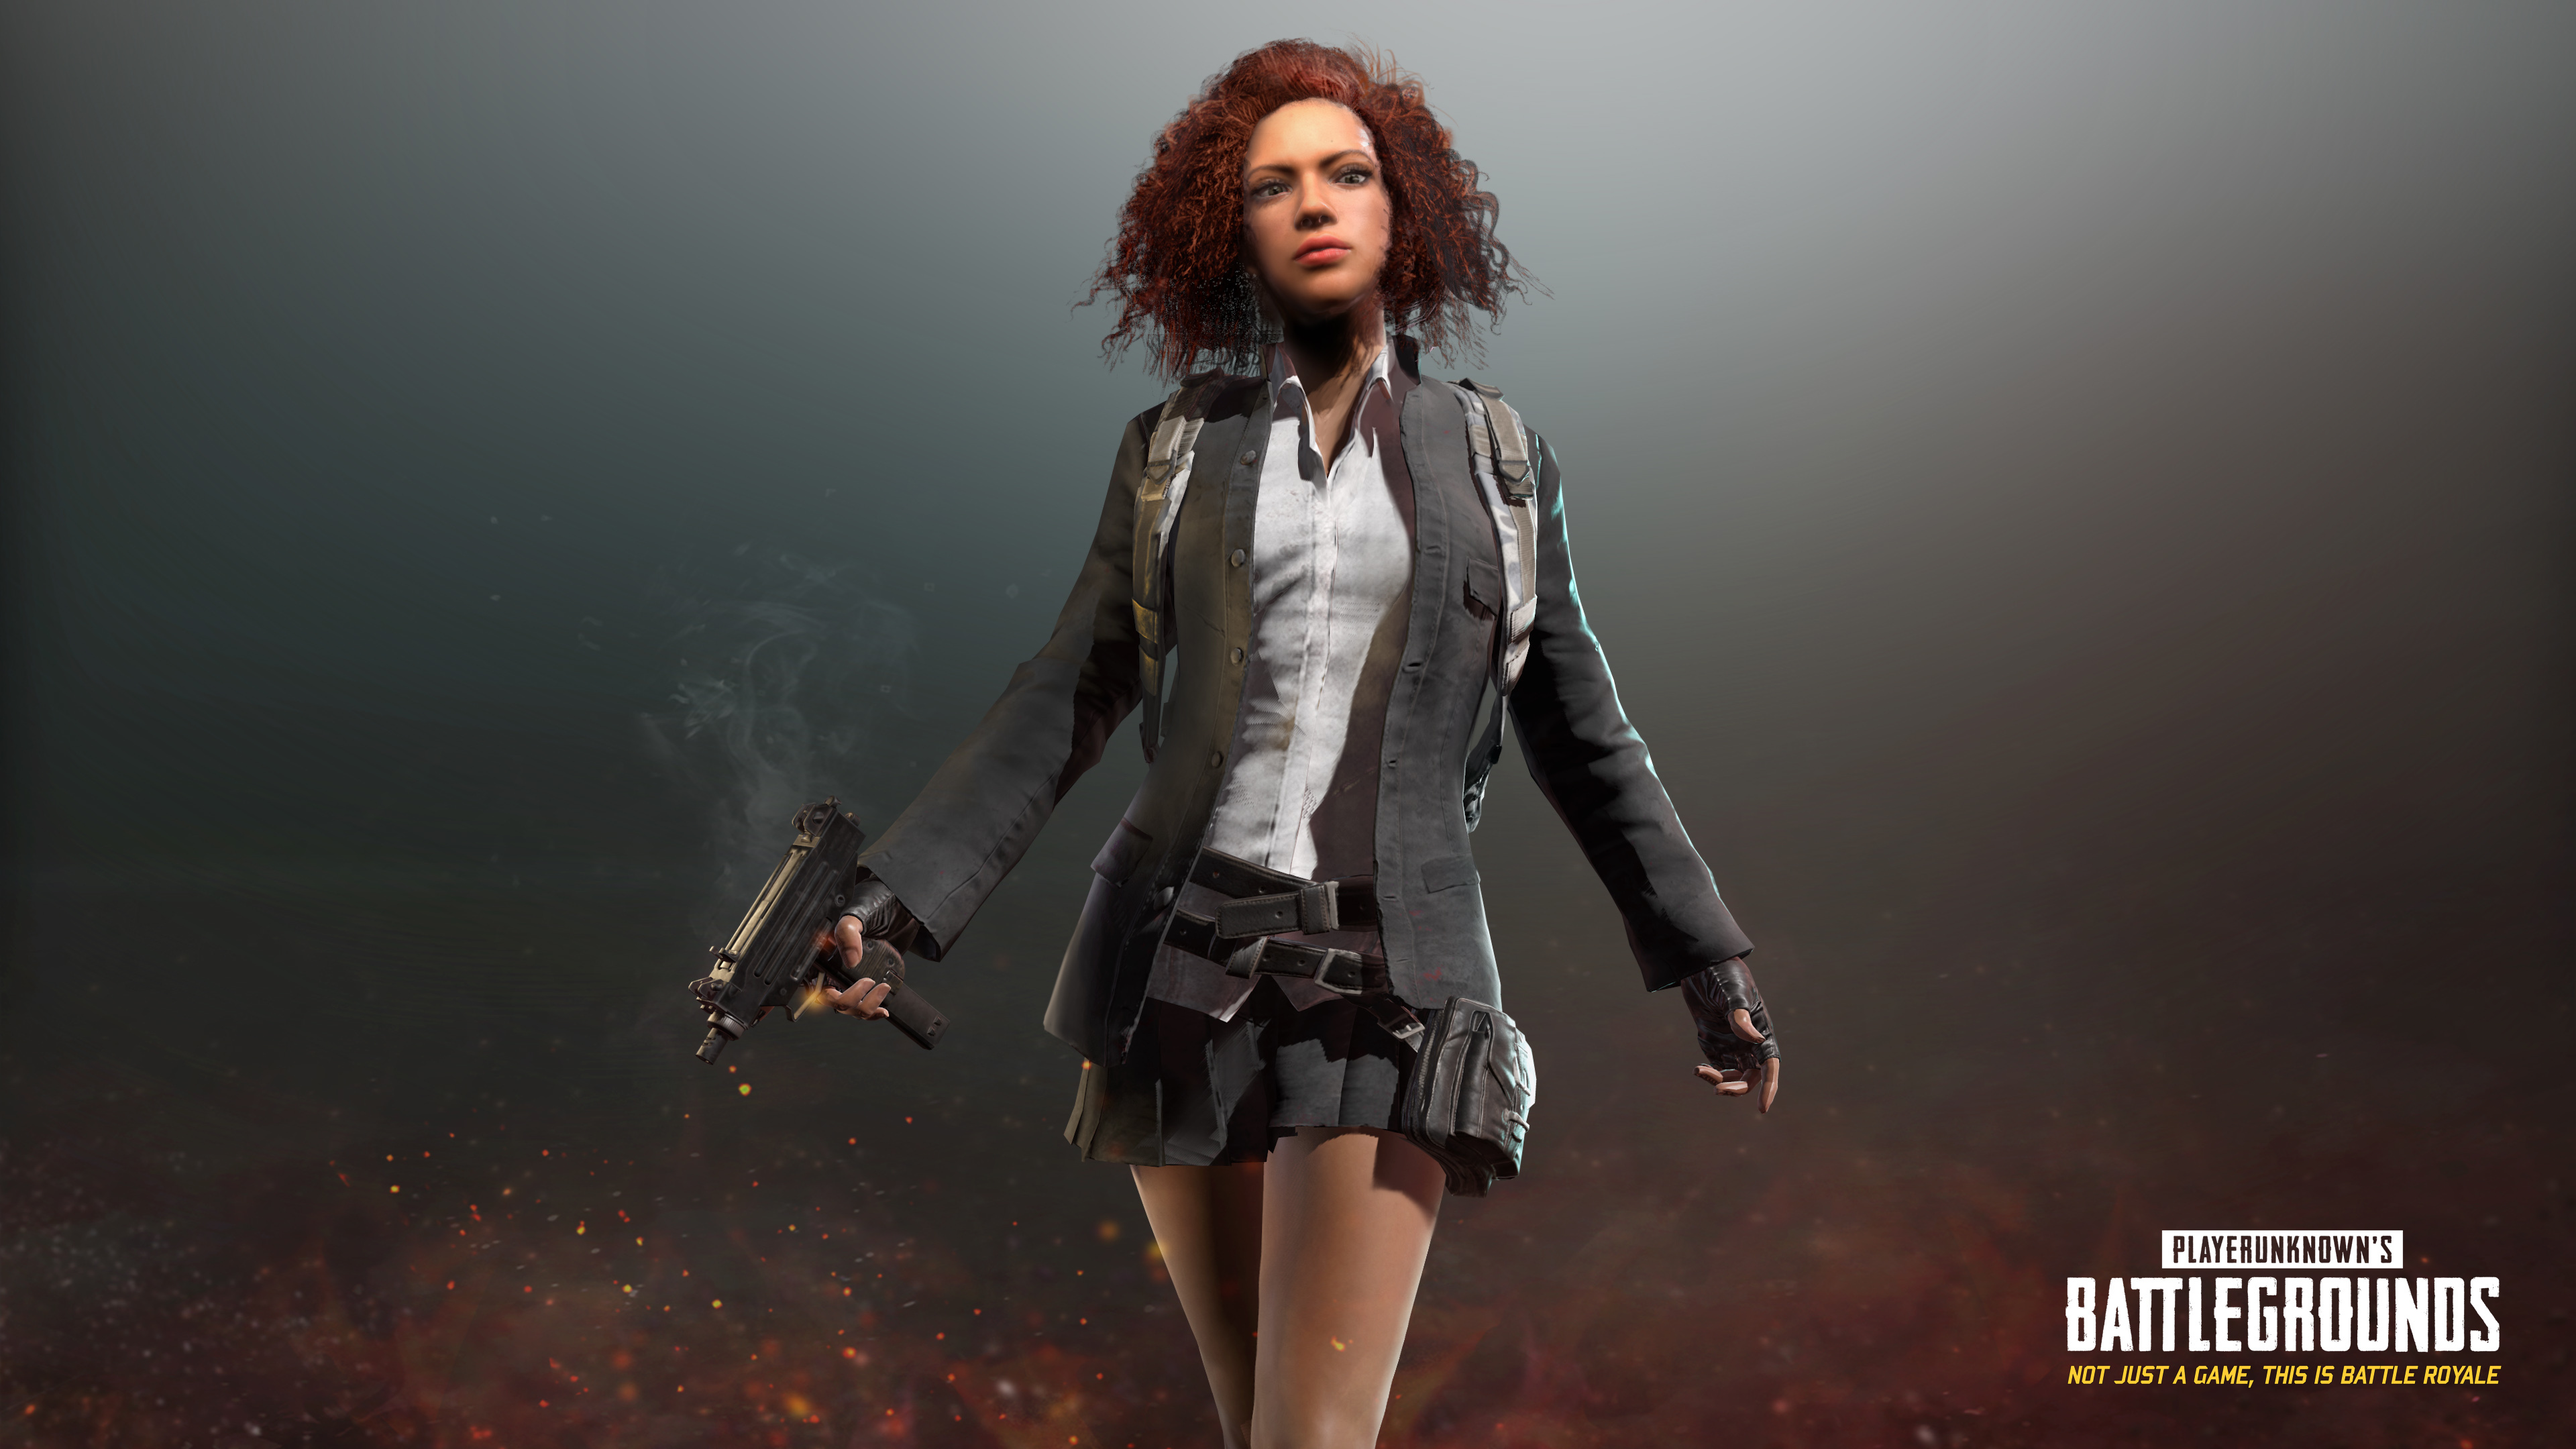 Gear Up for PlayerUnknown's Battlegrounds With Limited-Edition Cosmetic Packs